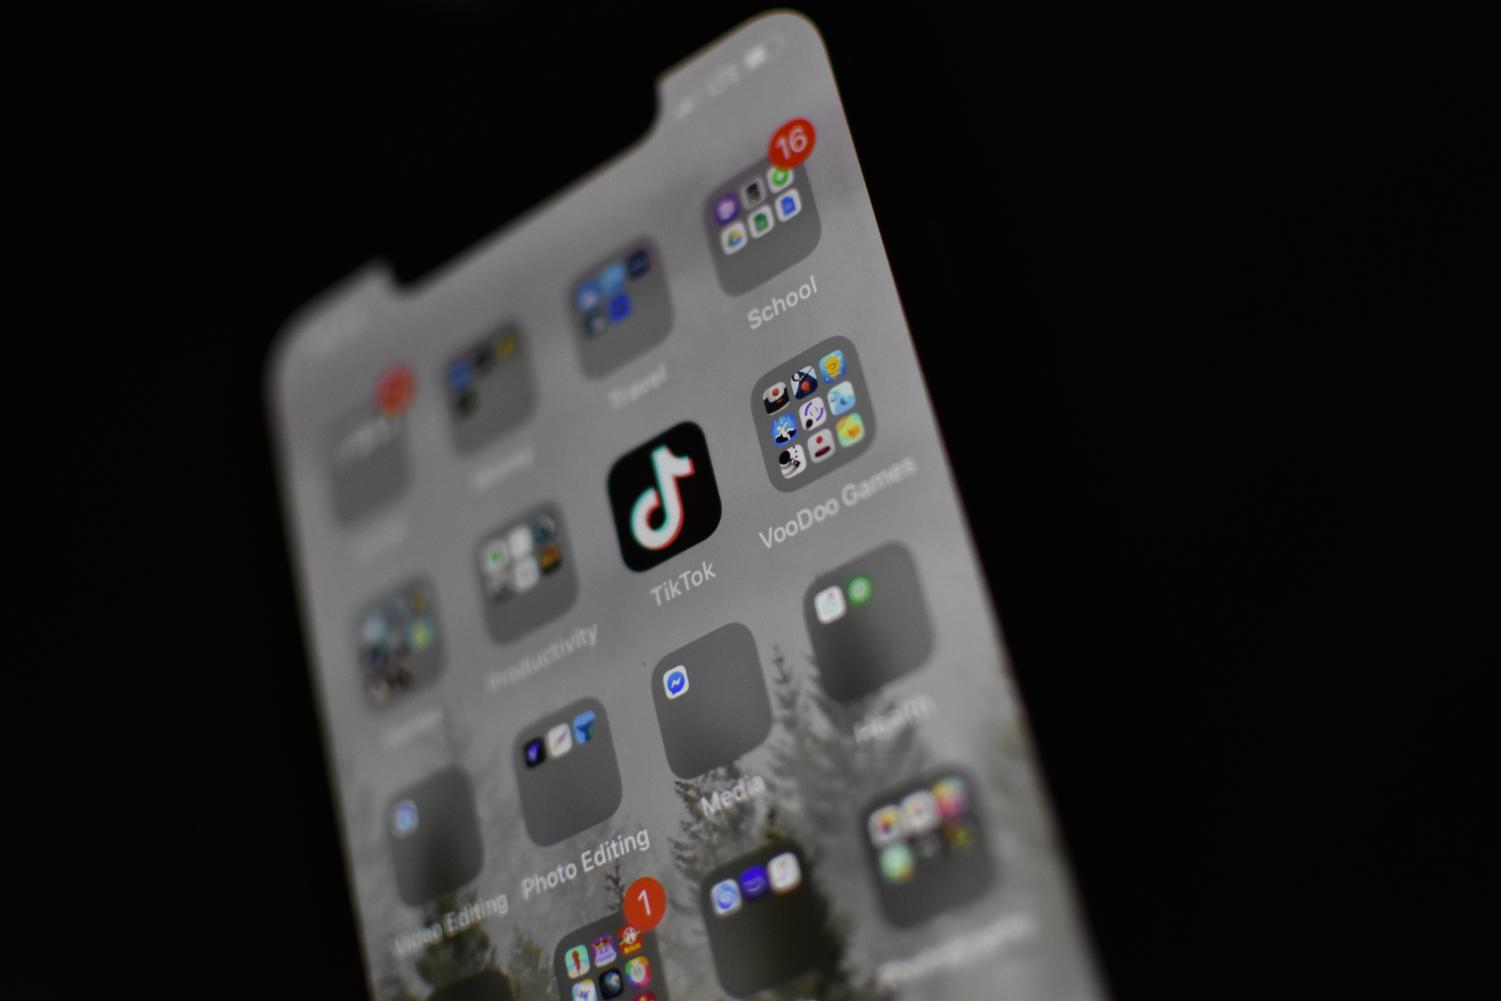 TIK TOK: THE SEQUEL TO FACEBOOK? Investigations begin around the world on the popular app Tik Tok as the privacy of the app is called into question by the masses.